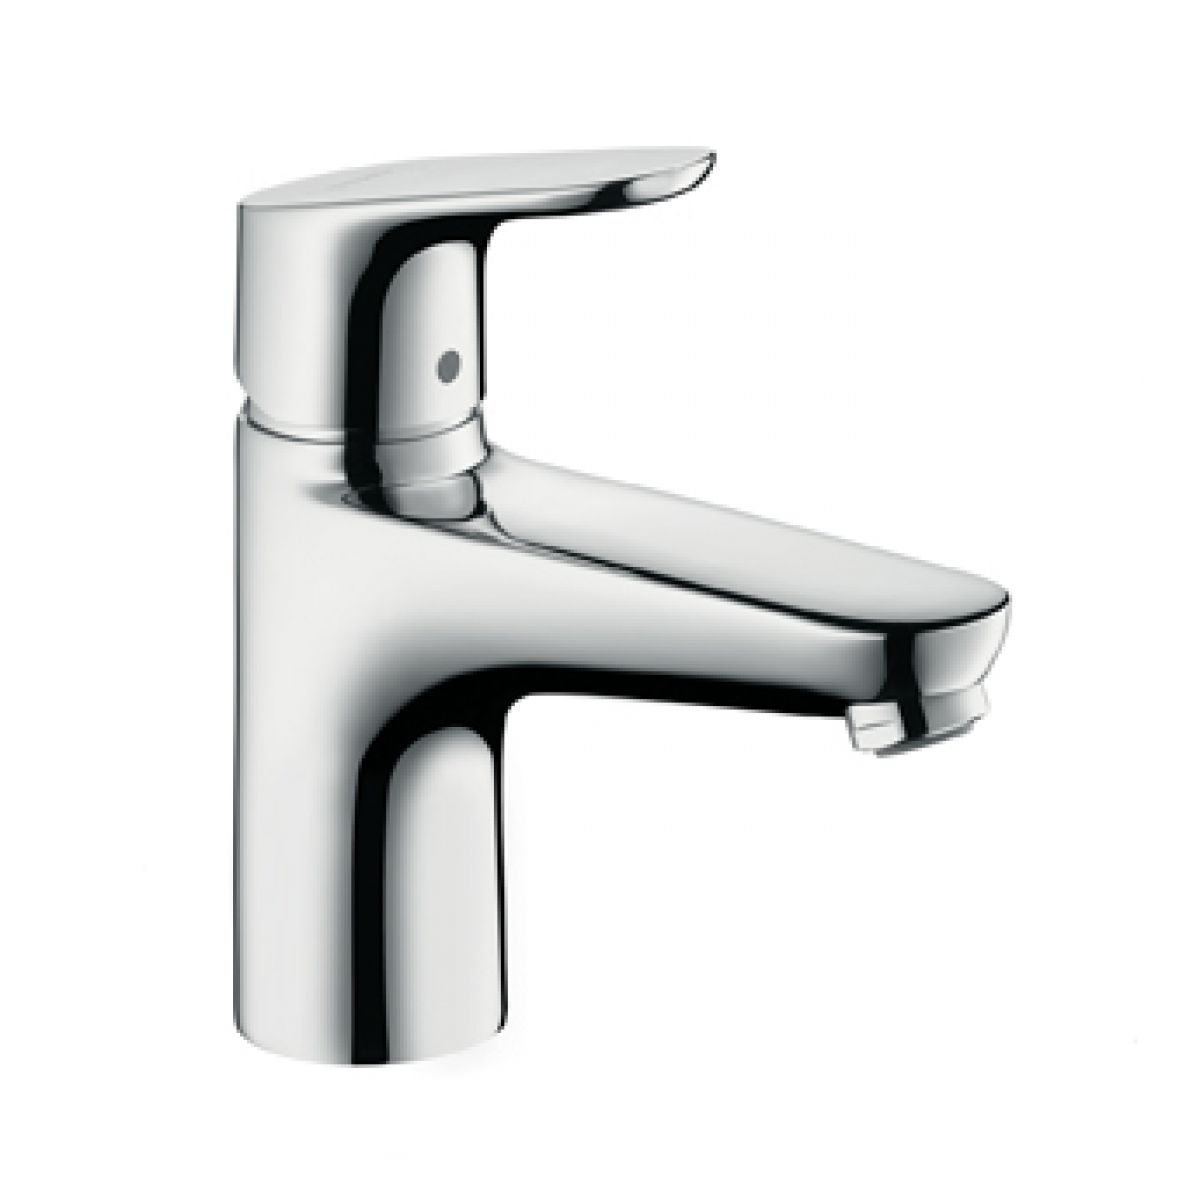 hansgrohe focus monotrou single lever bath mixer uk bathrooms. Black Bedroom Furniture Sets. Home Design Ideas